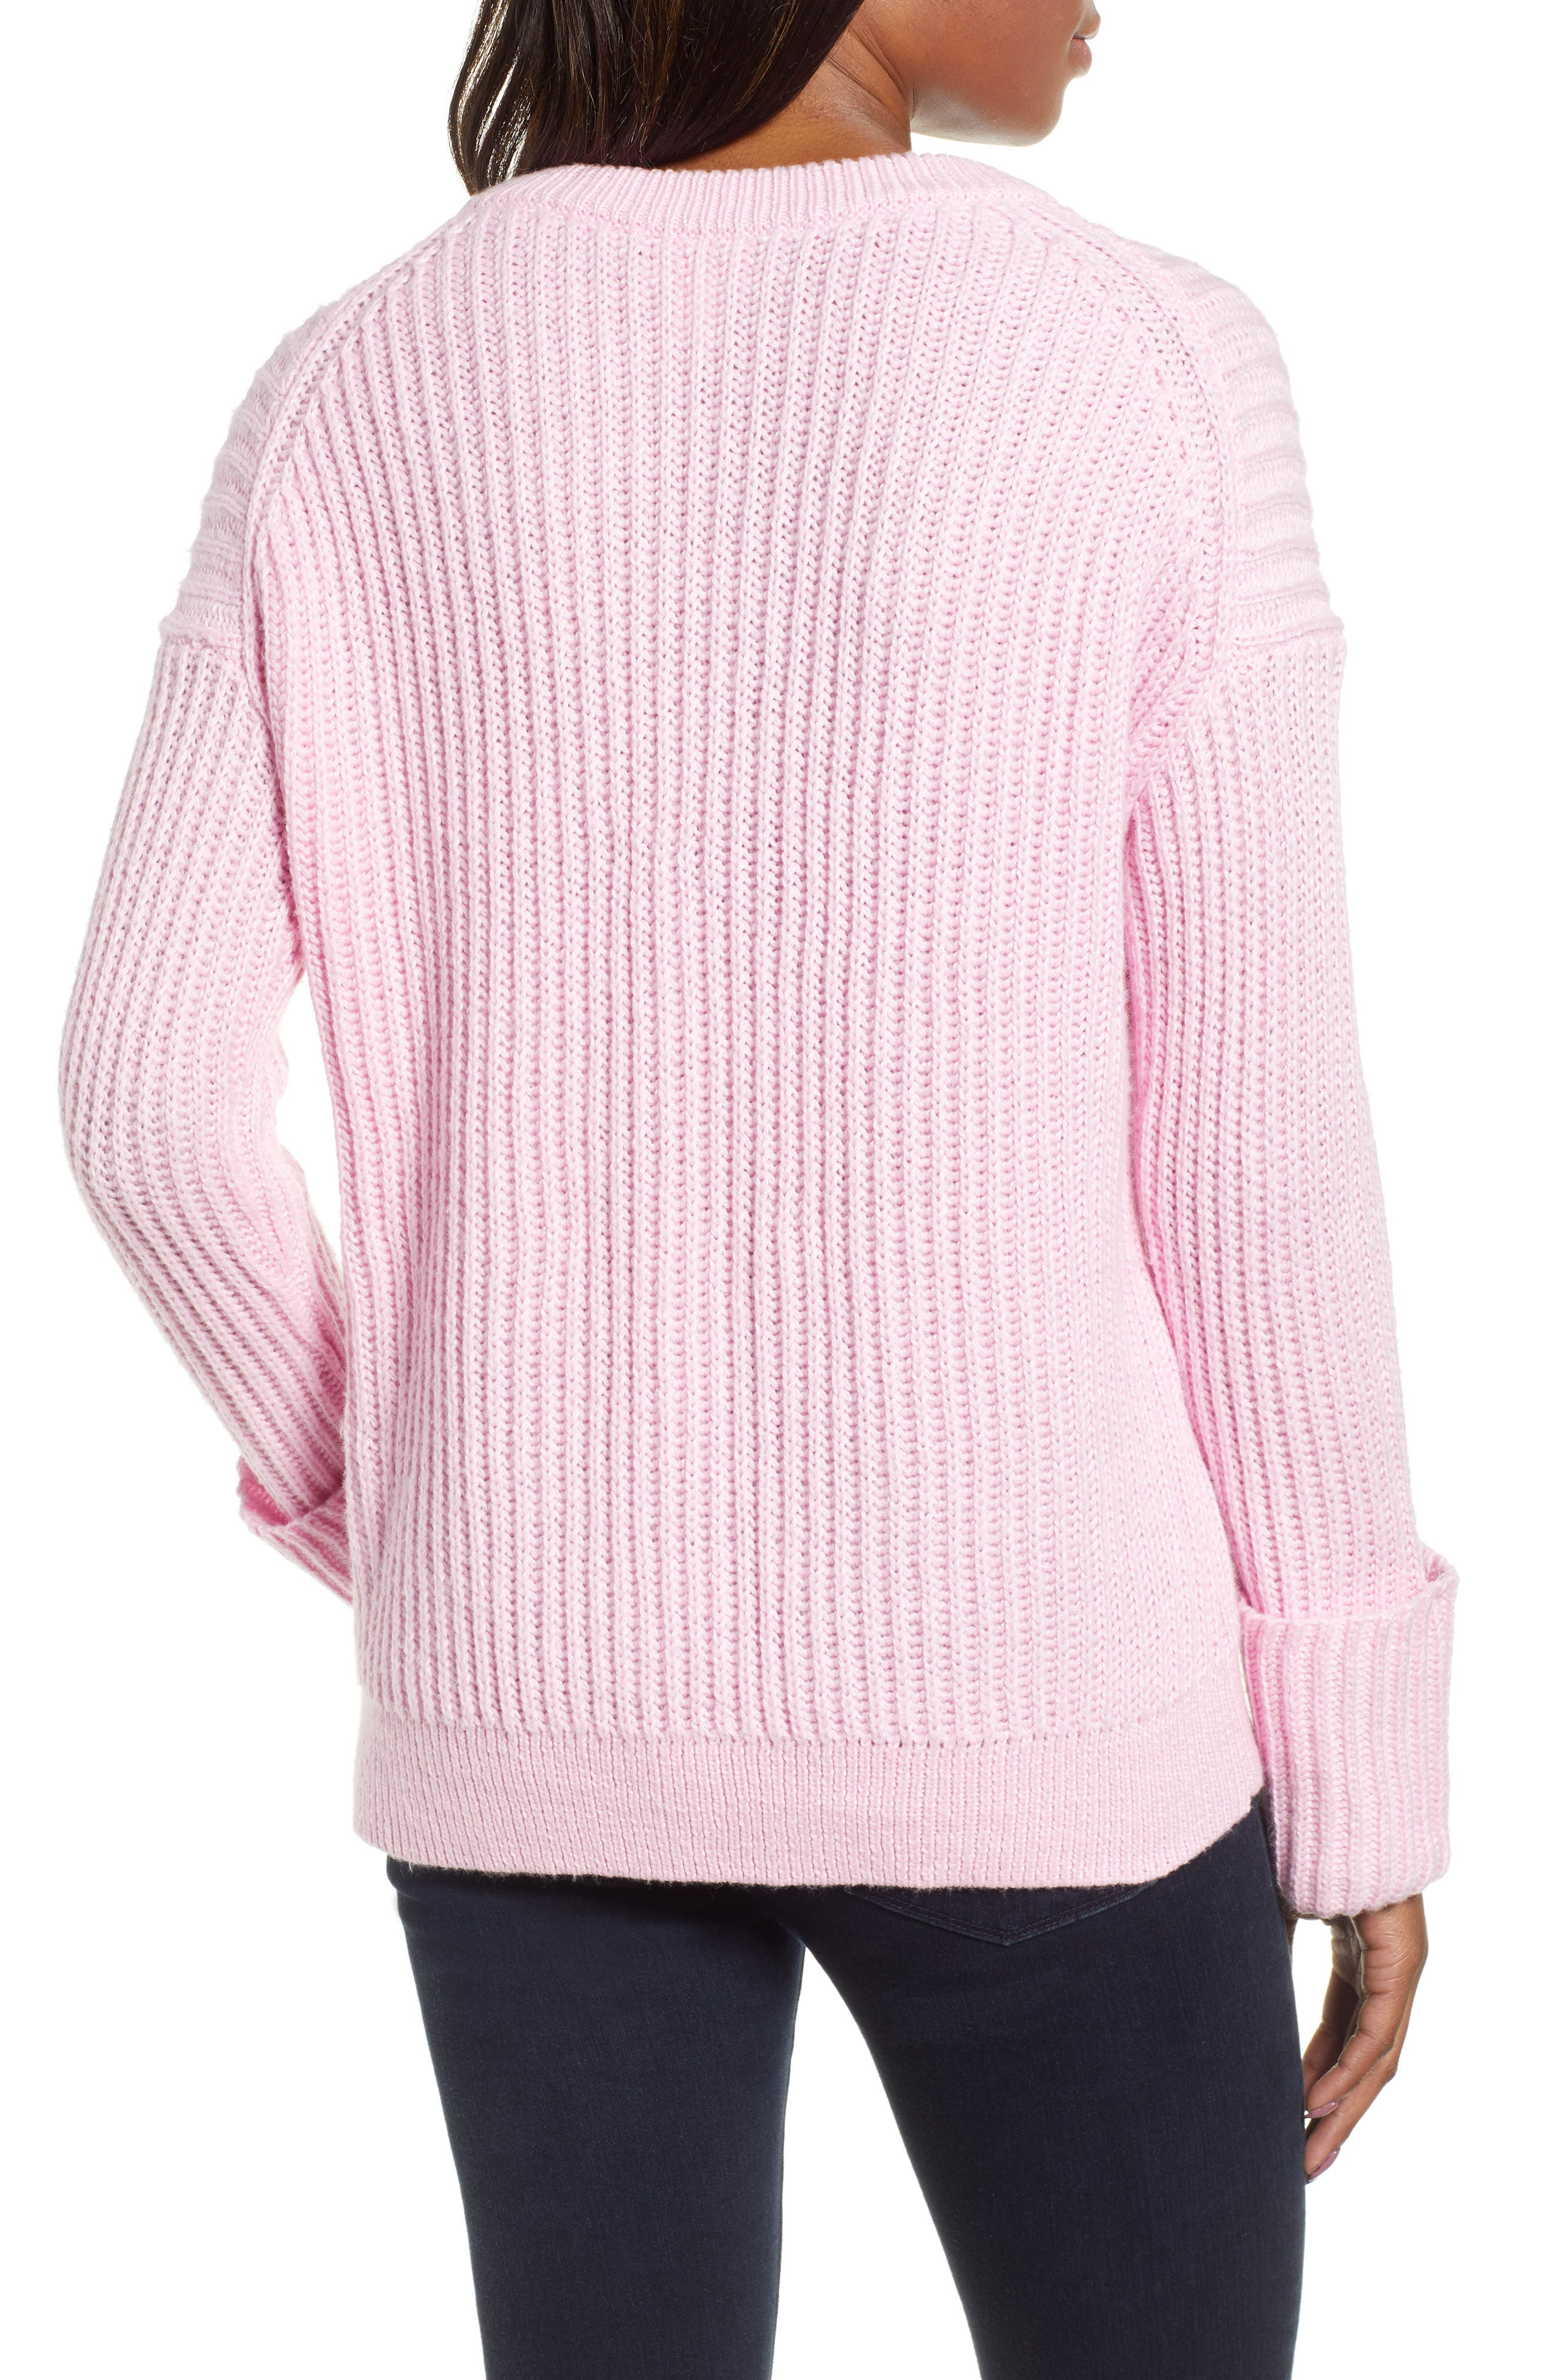 CASLON<SUP>®</SUP>, Cuffed Sleeve Shaker Sweater, Alternate thumbnail 2, color, PINK FLOWER